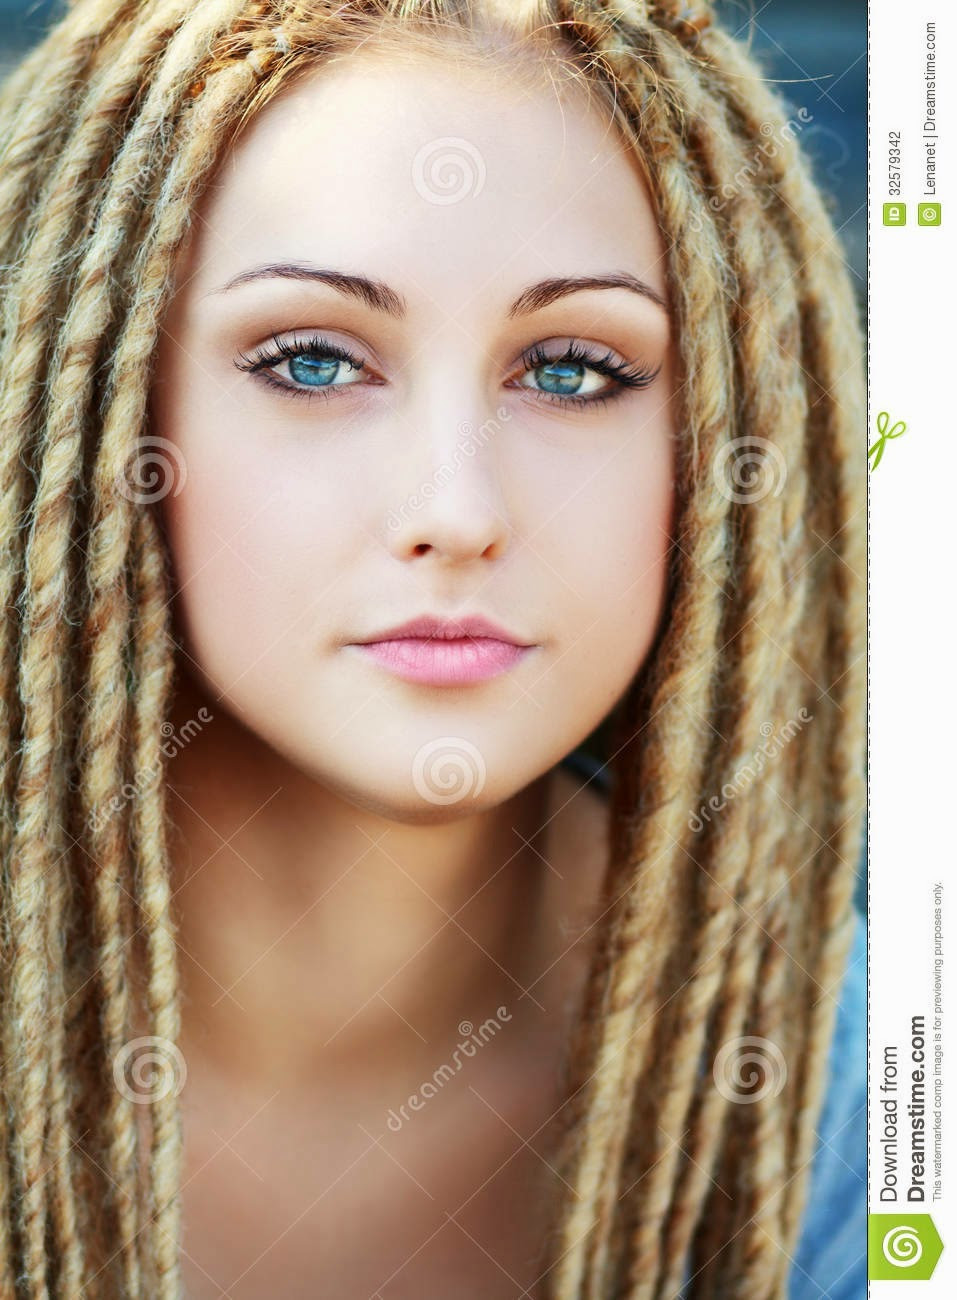 White Girl Dread Hairstyles  White women with dreads